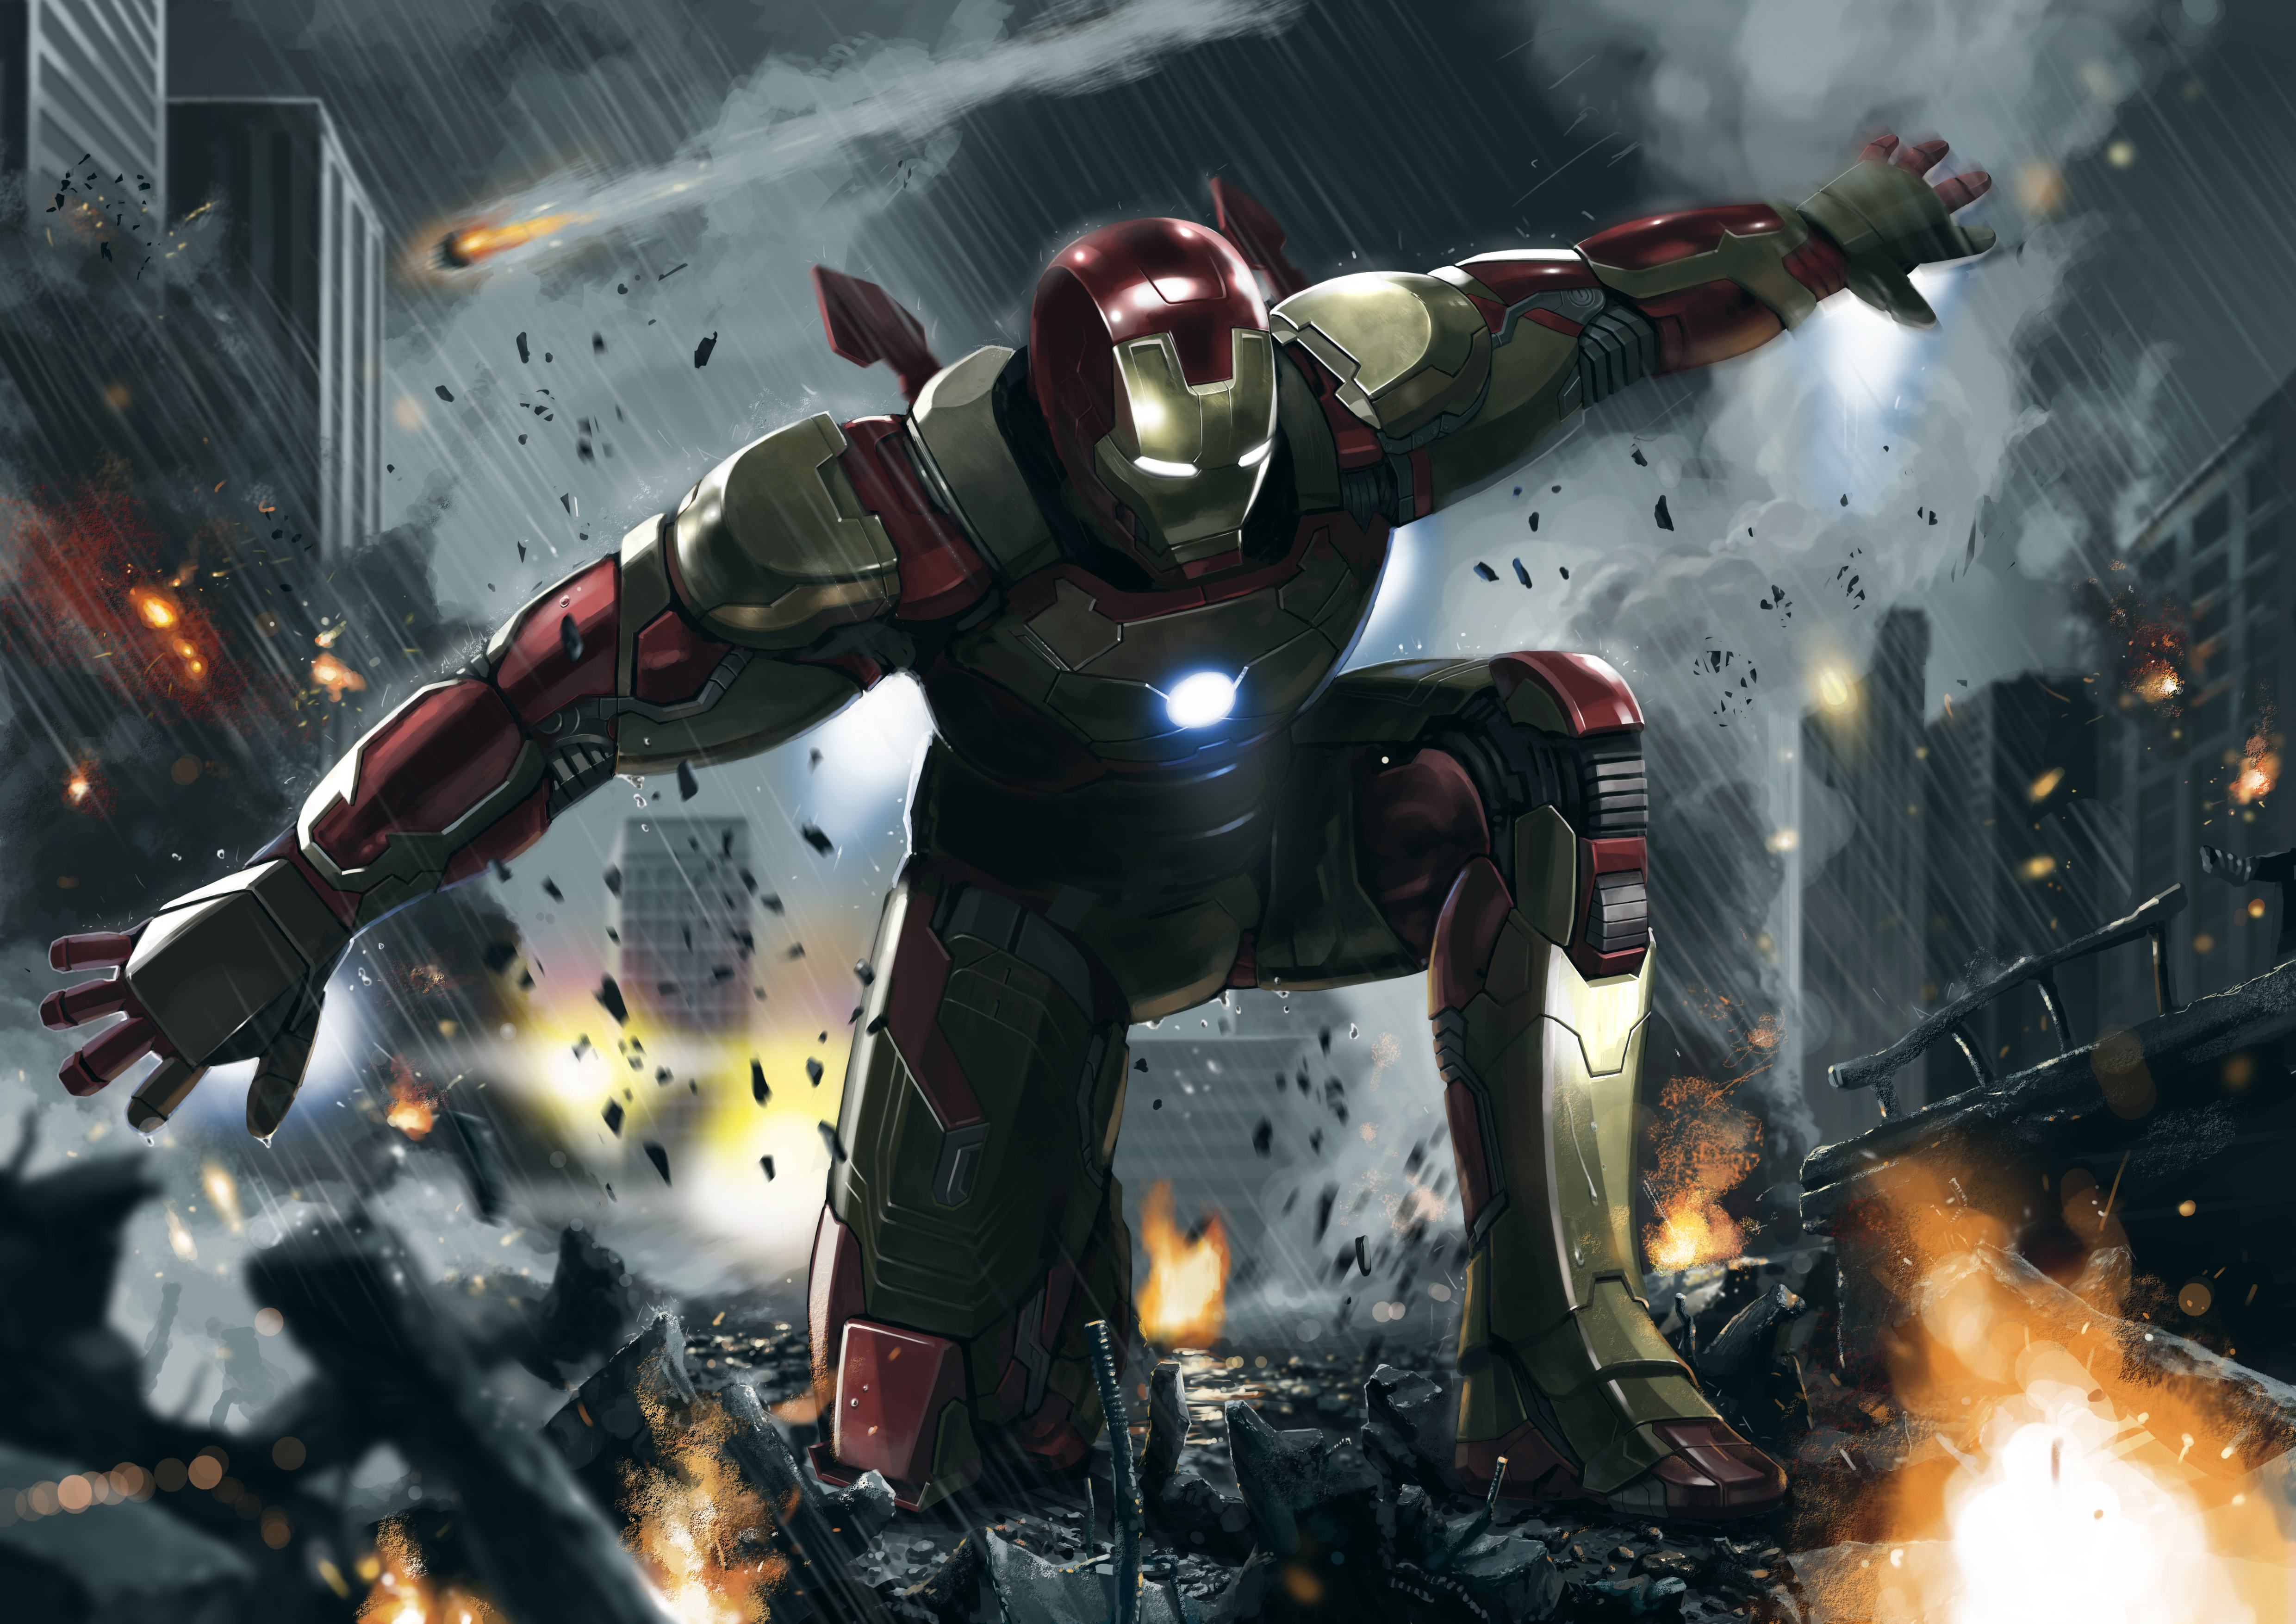 Iron man 3 art 4k hd superheroes 4k wallpapers images backgrounds photos and pictures - Iron man wallpaper 4k ...